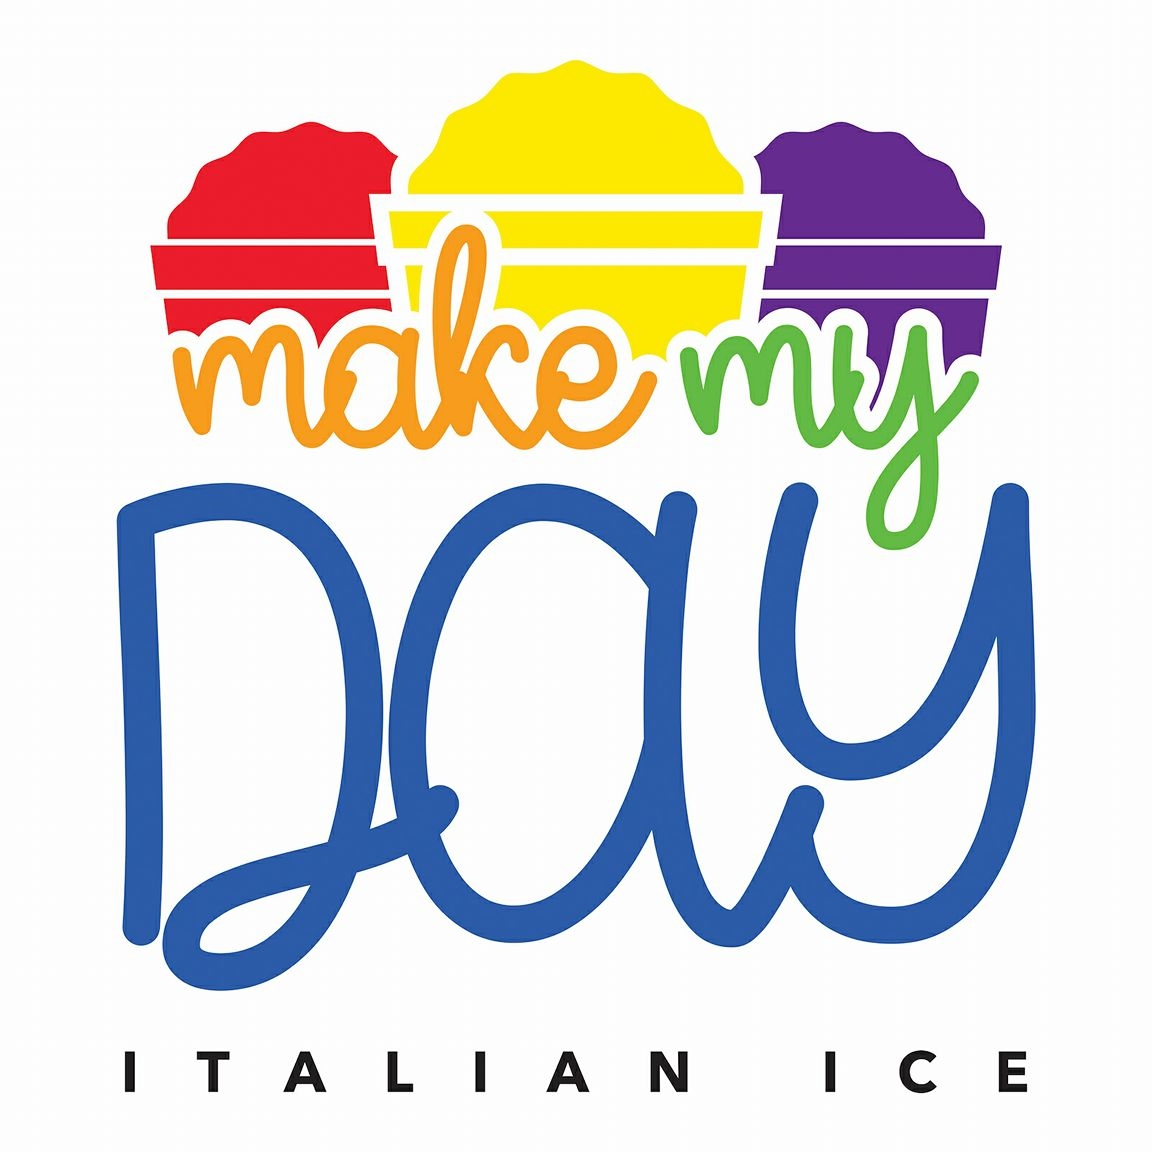 Make My Day Italian ice logo